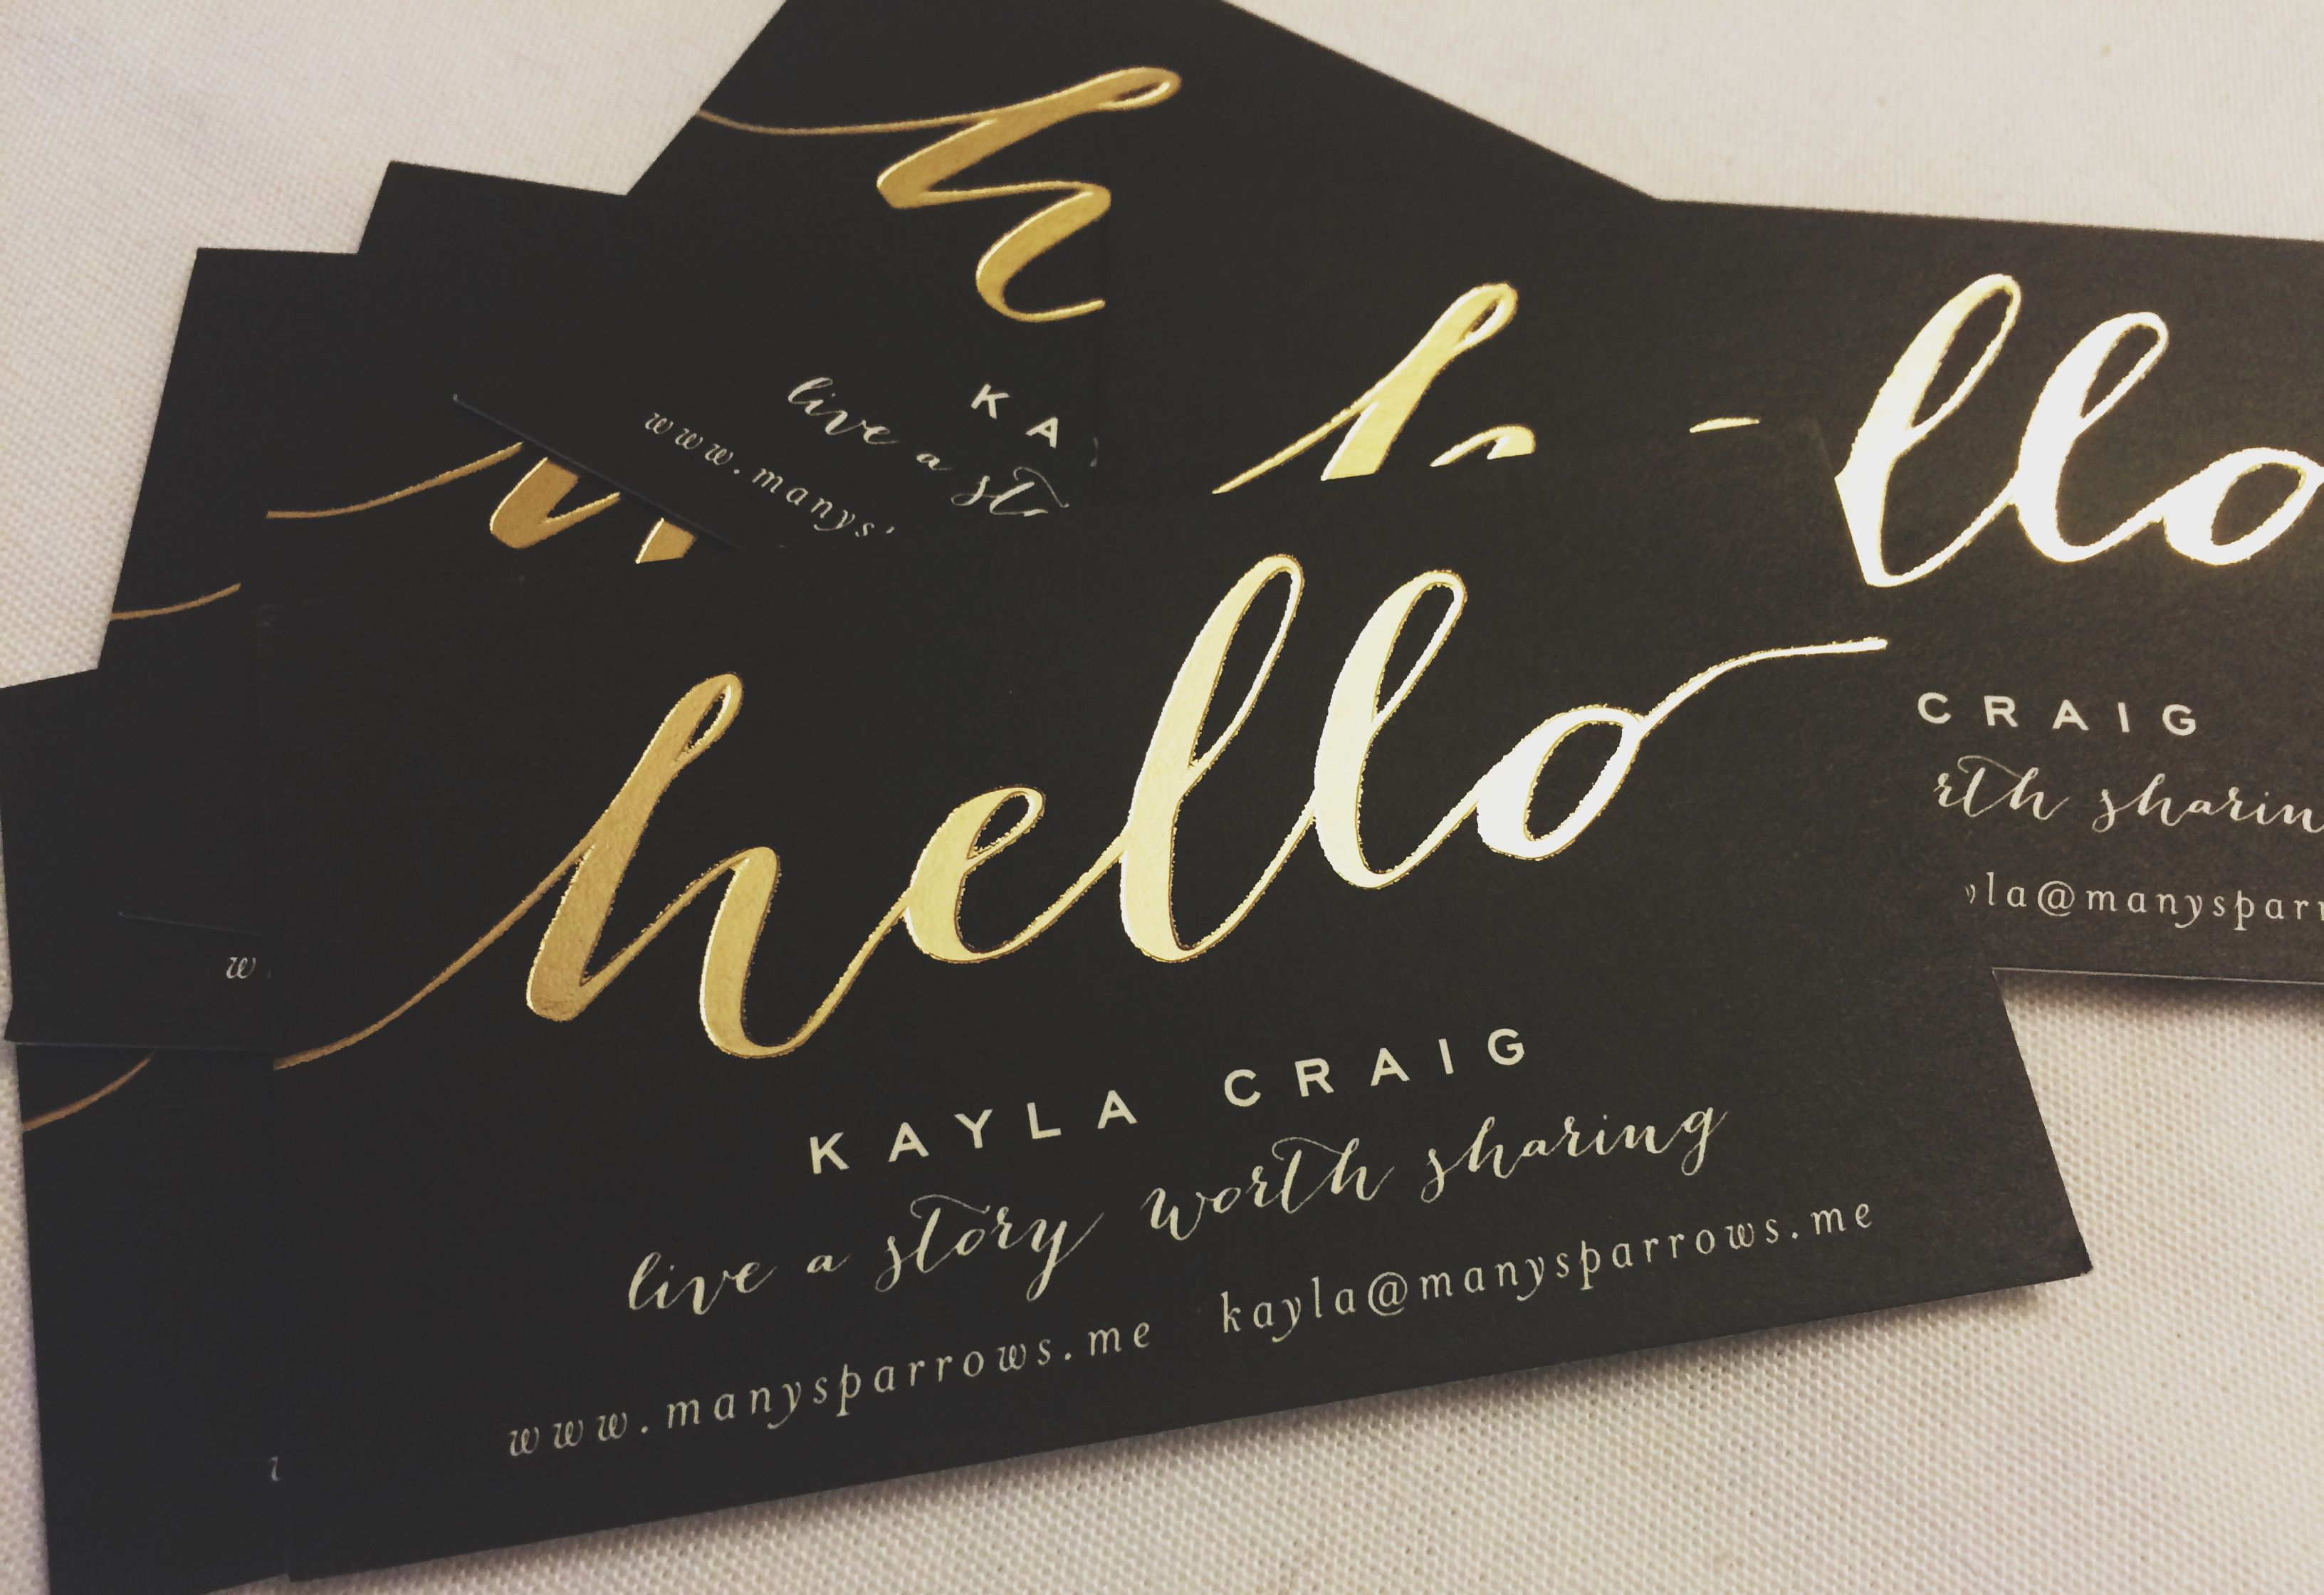 Minted Gold Foil Business Cards Networking Tips Including What